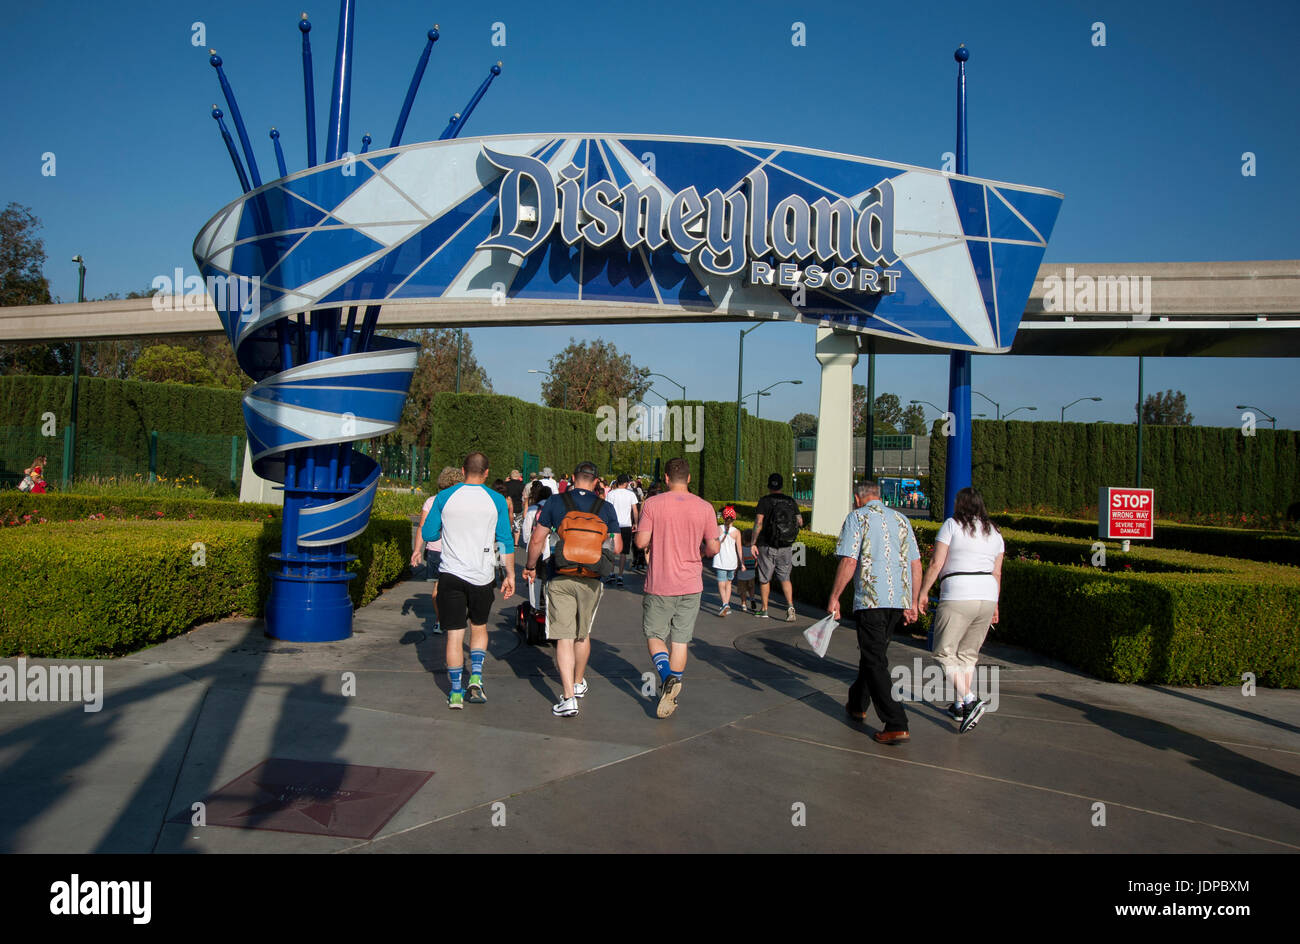 Visitors arriving at entrance of Disneyland Resort in Anaheim, CA Stock Photo